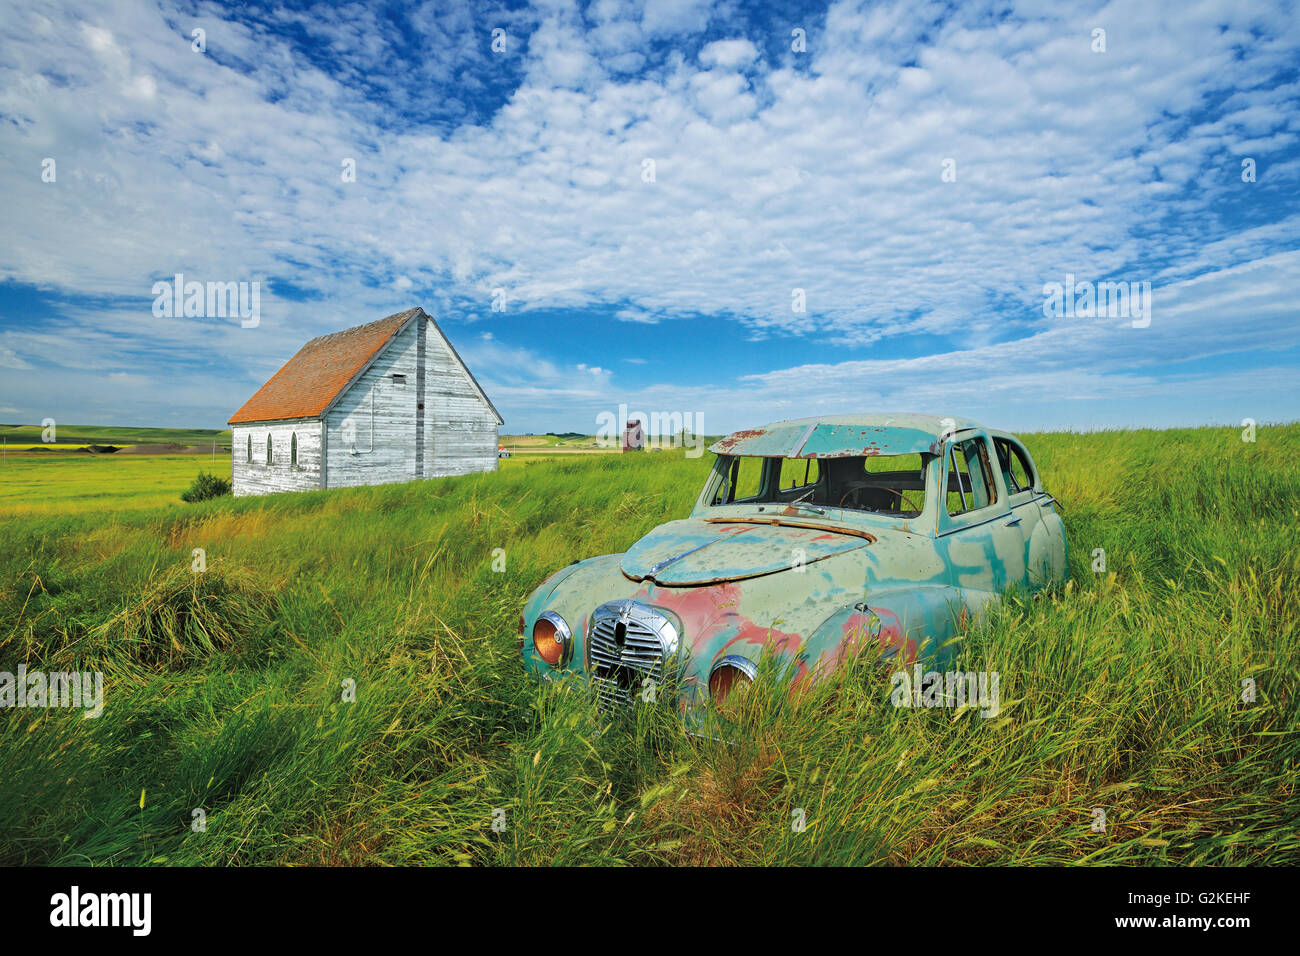 Old Austin car and church in field in ghost town  Neidpath Saskatchewan Canada - Stock Image